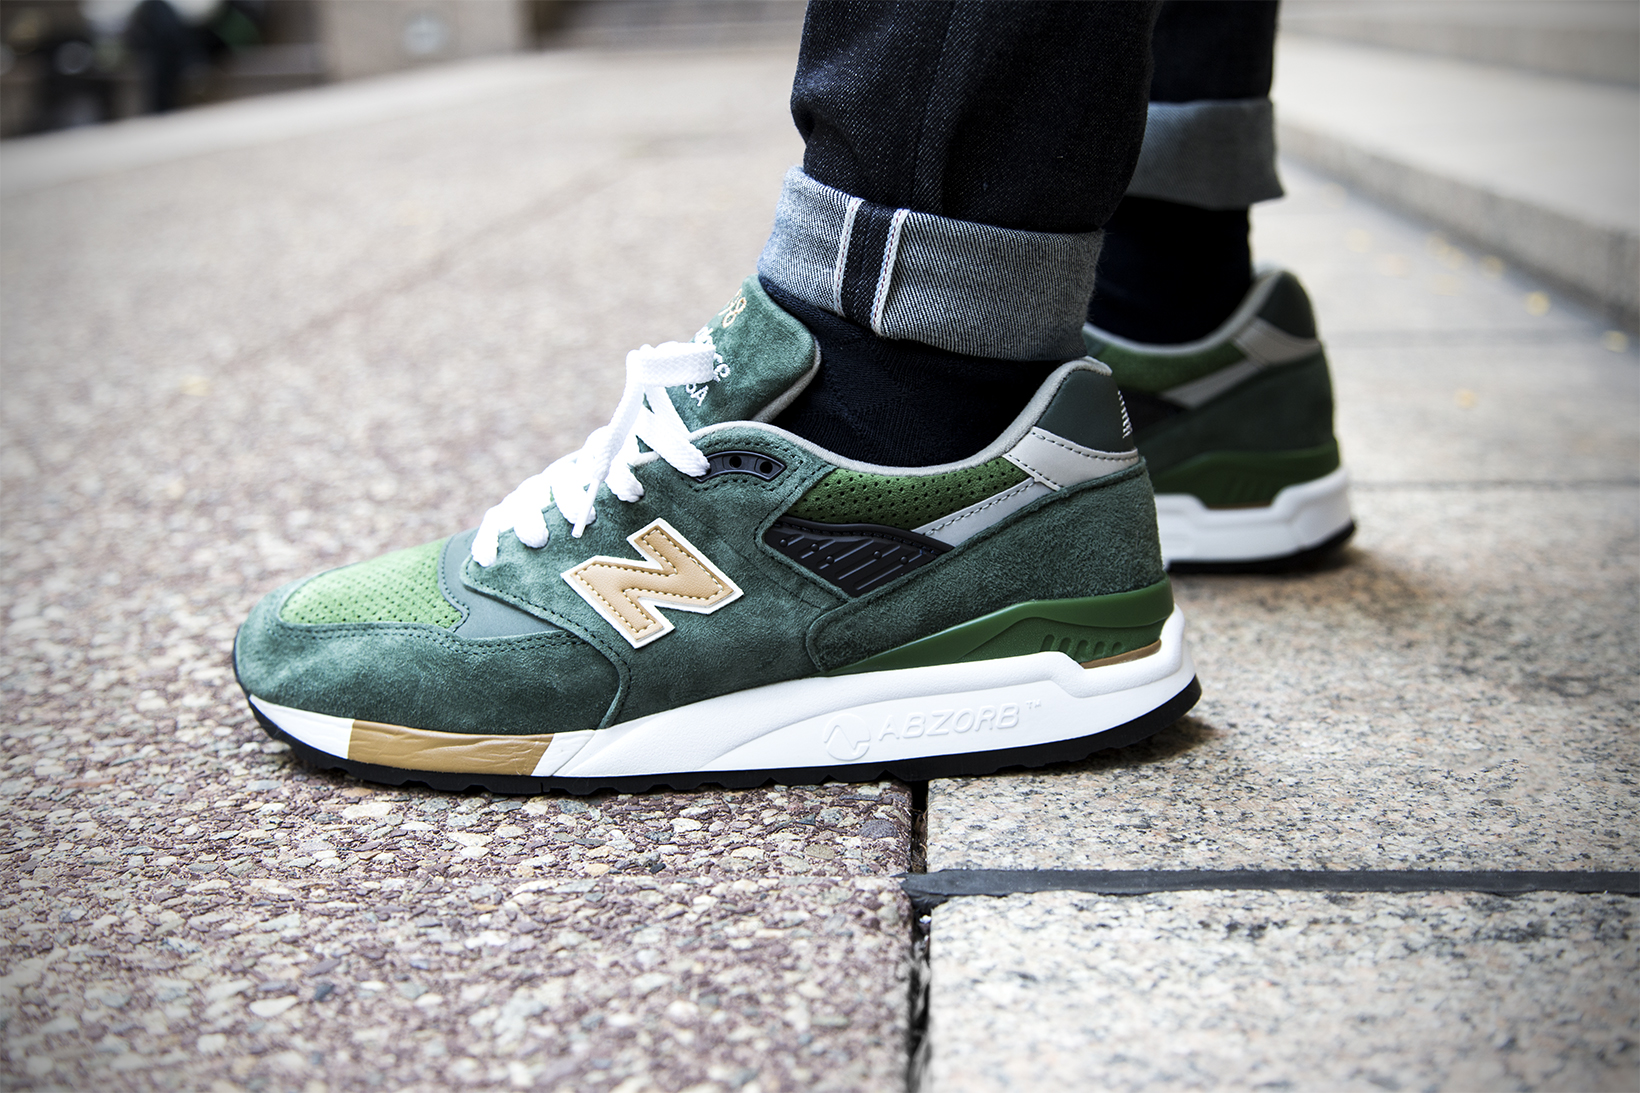 J.Crew's Upcoming New Balance 998 Is the Color of Money